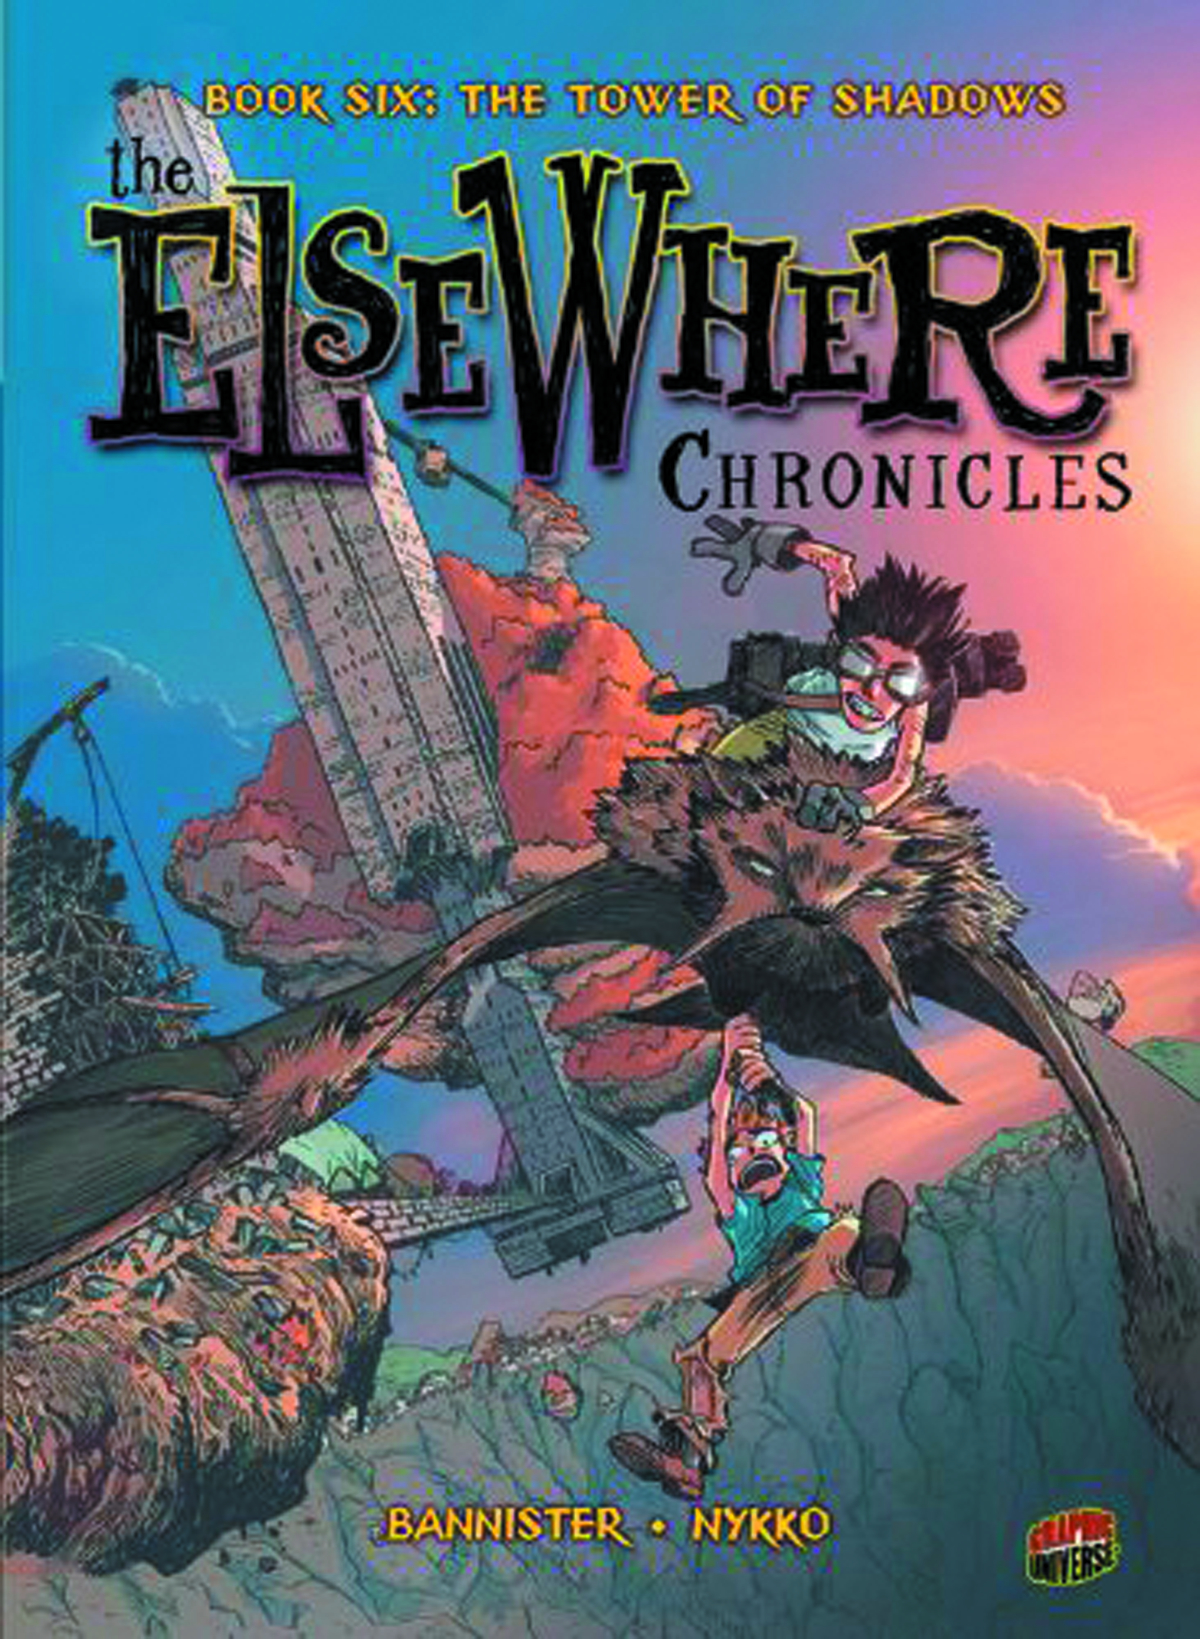 ELSEWHERE CHRONICLES GN VOL 06 TOWER OF SHADOWS